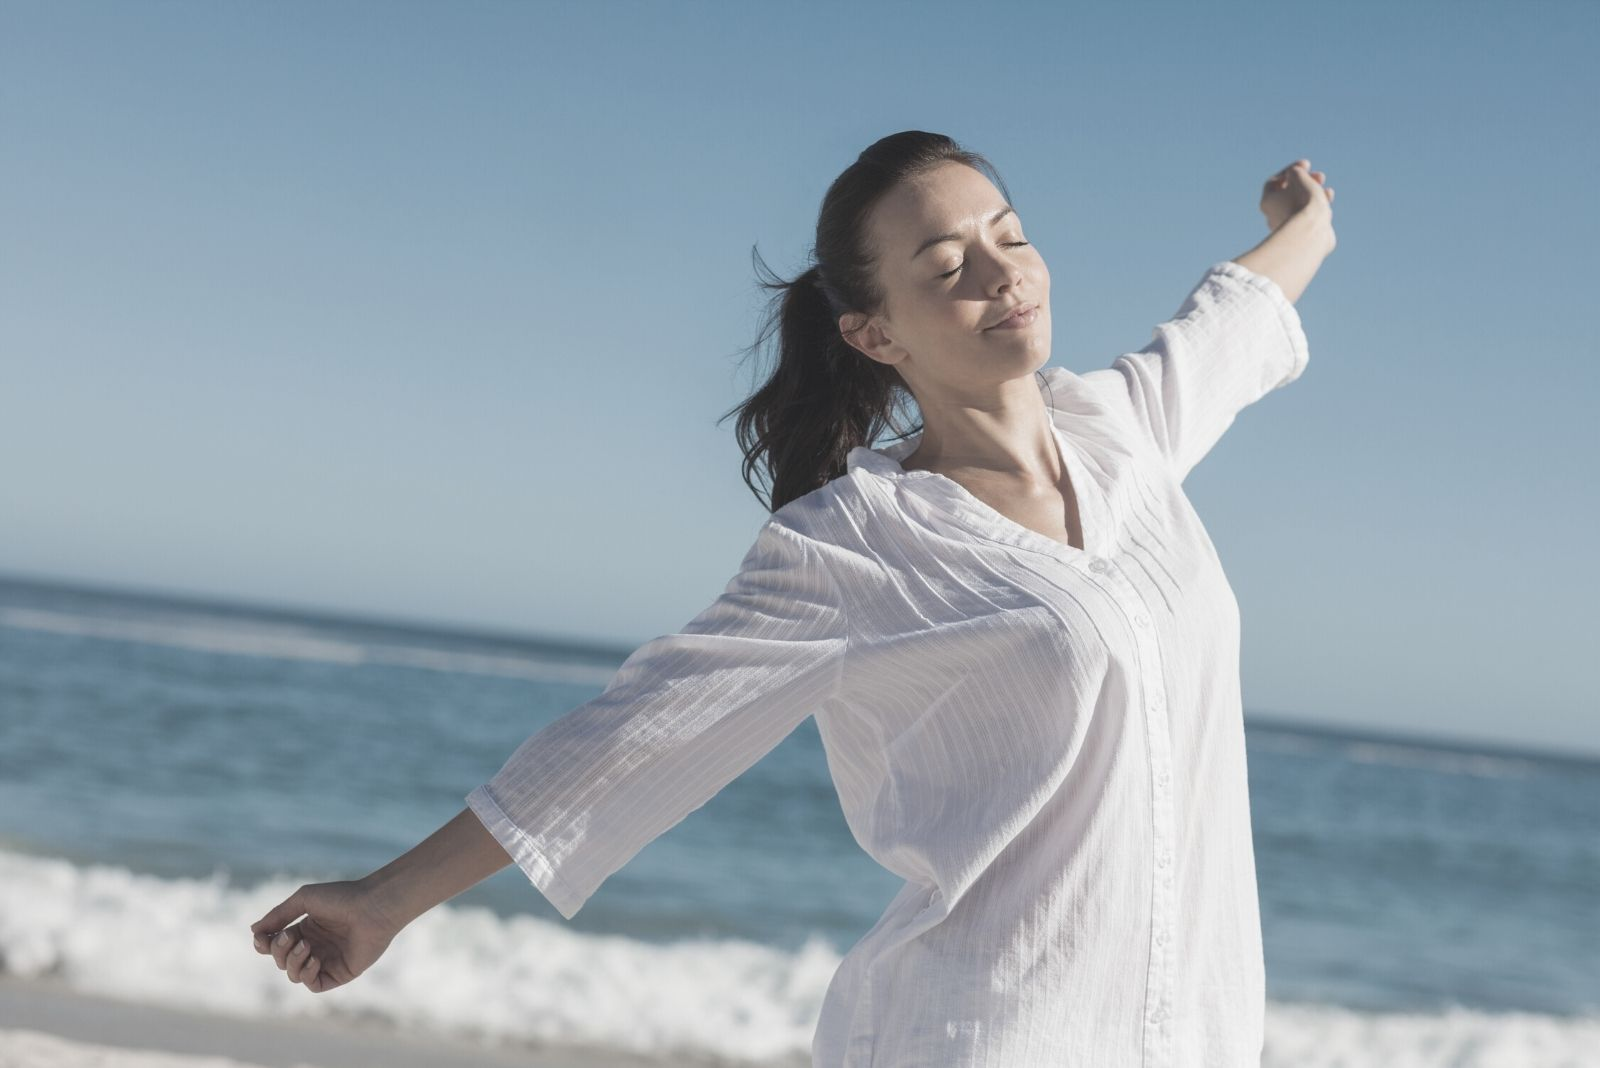 calm woman stretching in beach wearing white long sleeves and closing her eyes